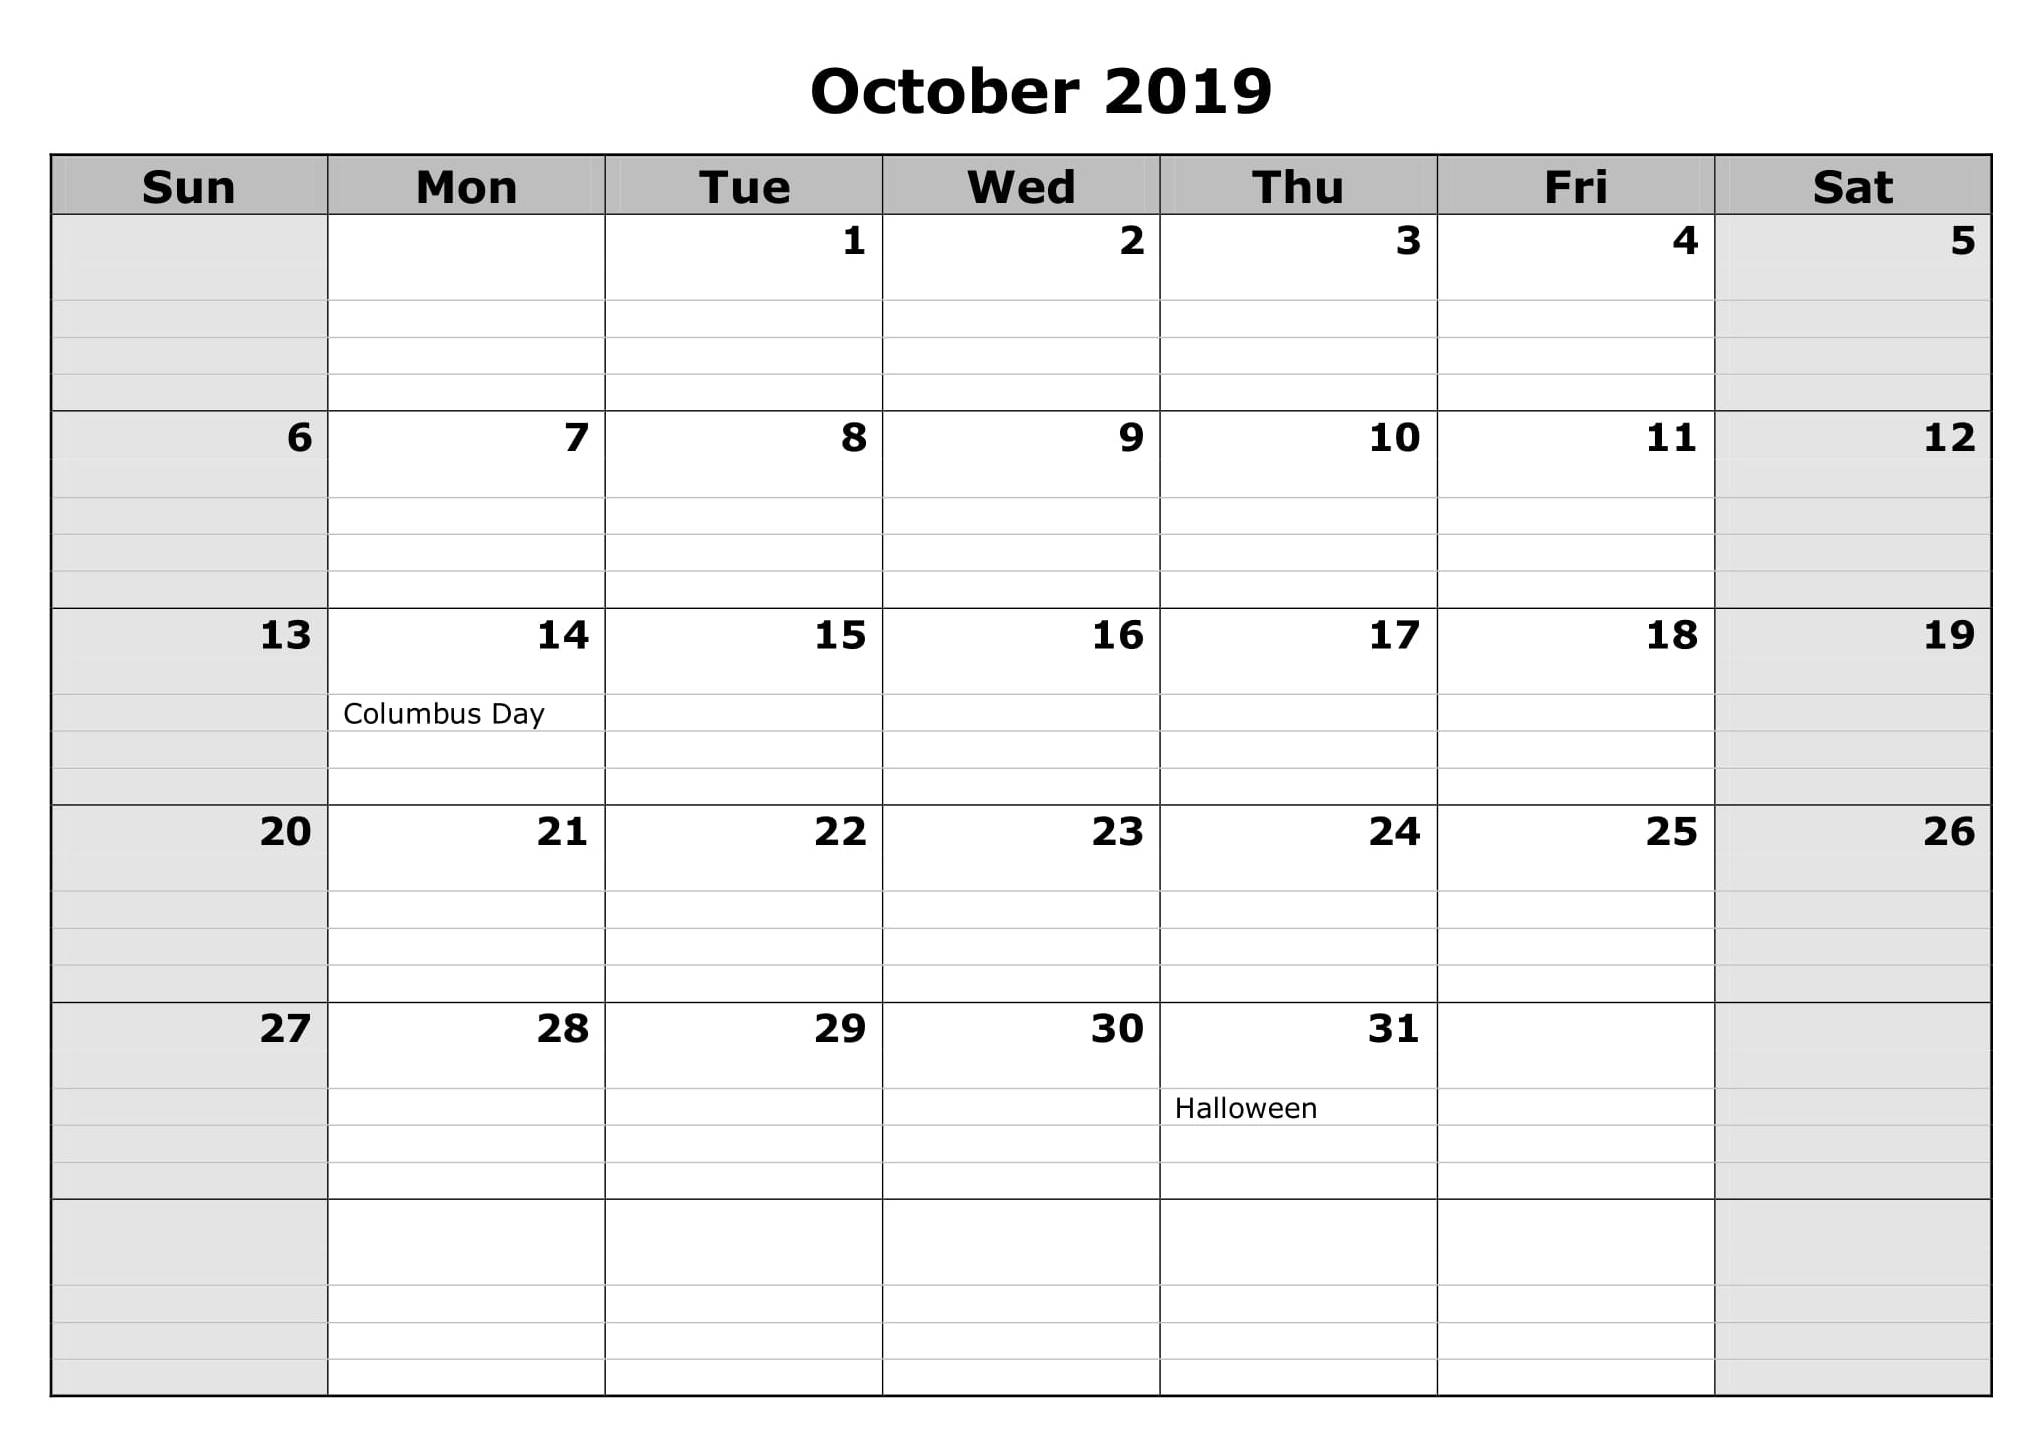 October 2019 Calendar USA Federal Holidays